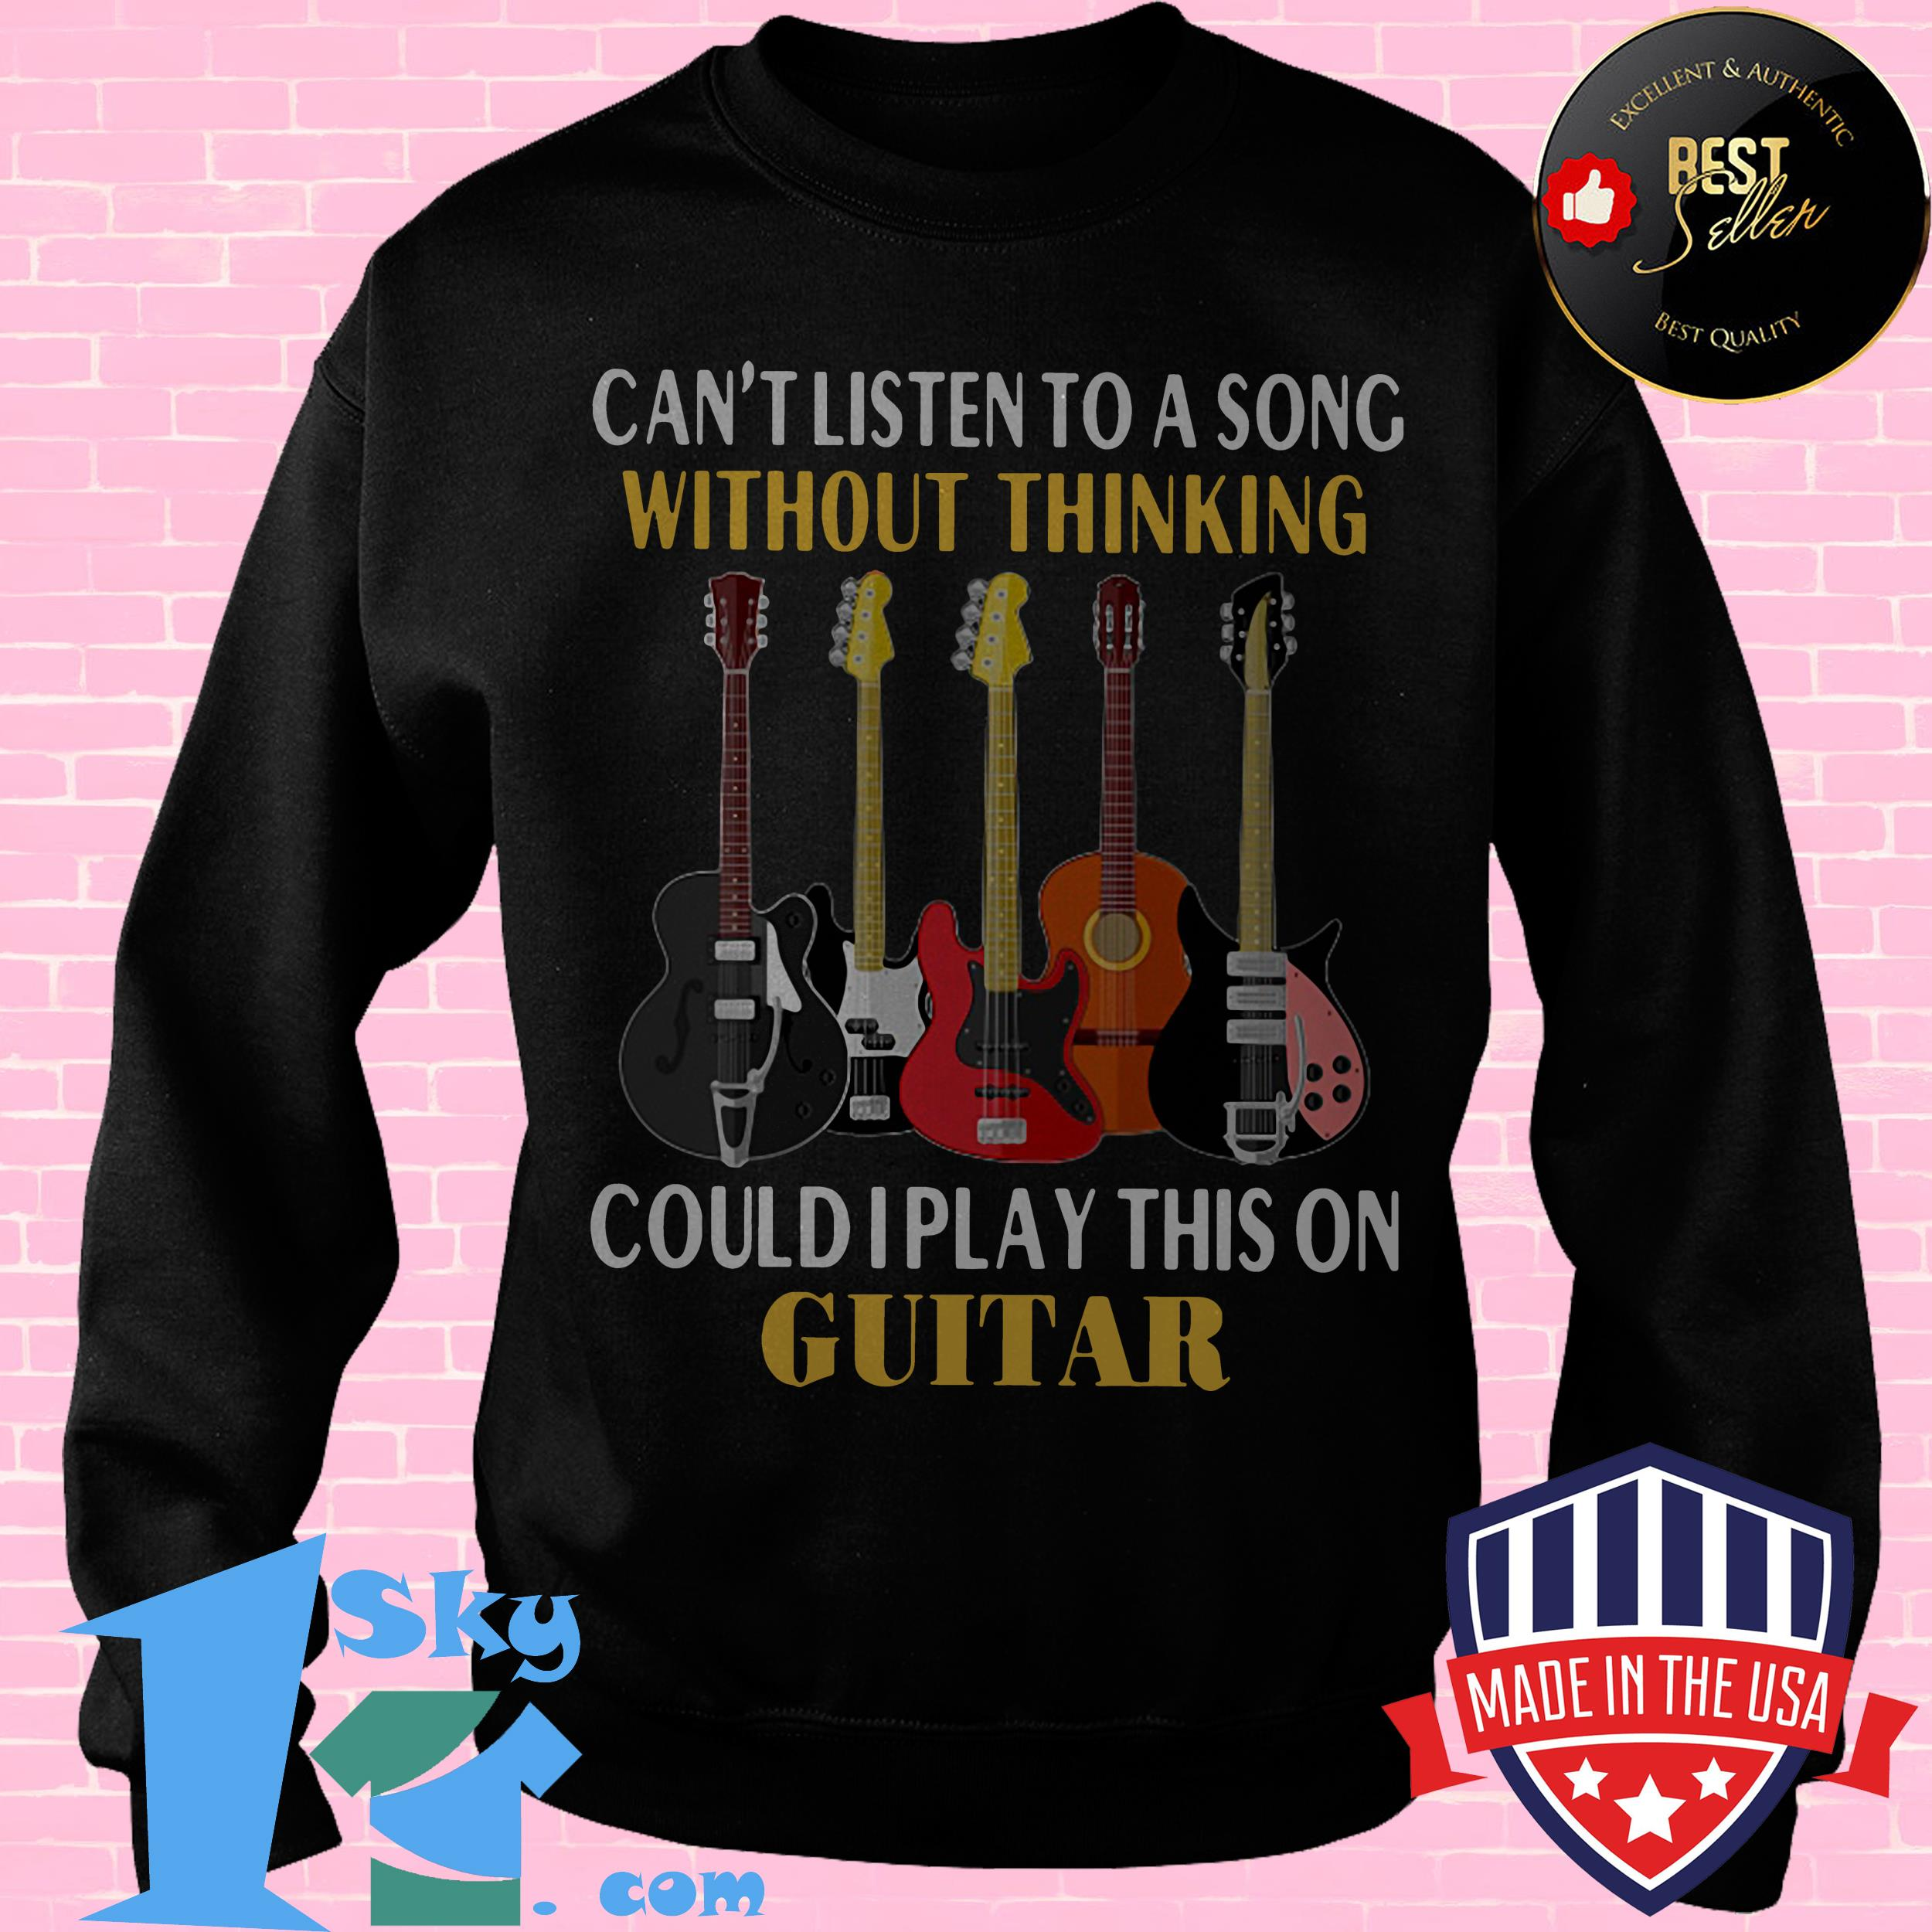 cant listen to a song without thinking could i play this on guitar sweatshirt - Can't Listen To A Song Without Thinking Could I Play This On Guitar shirt